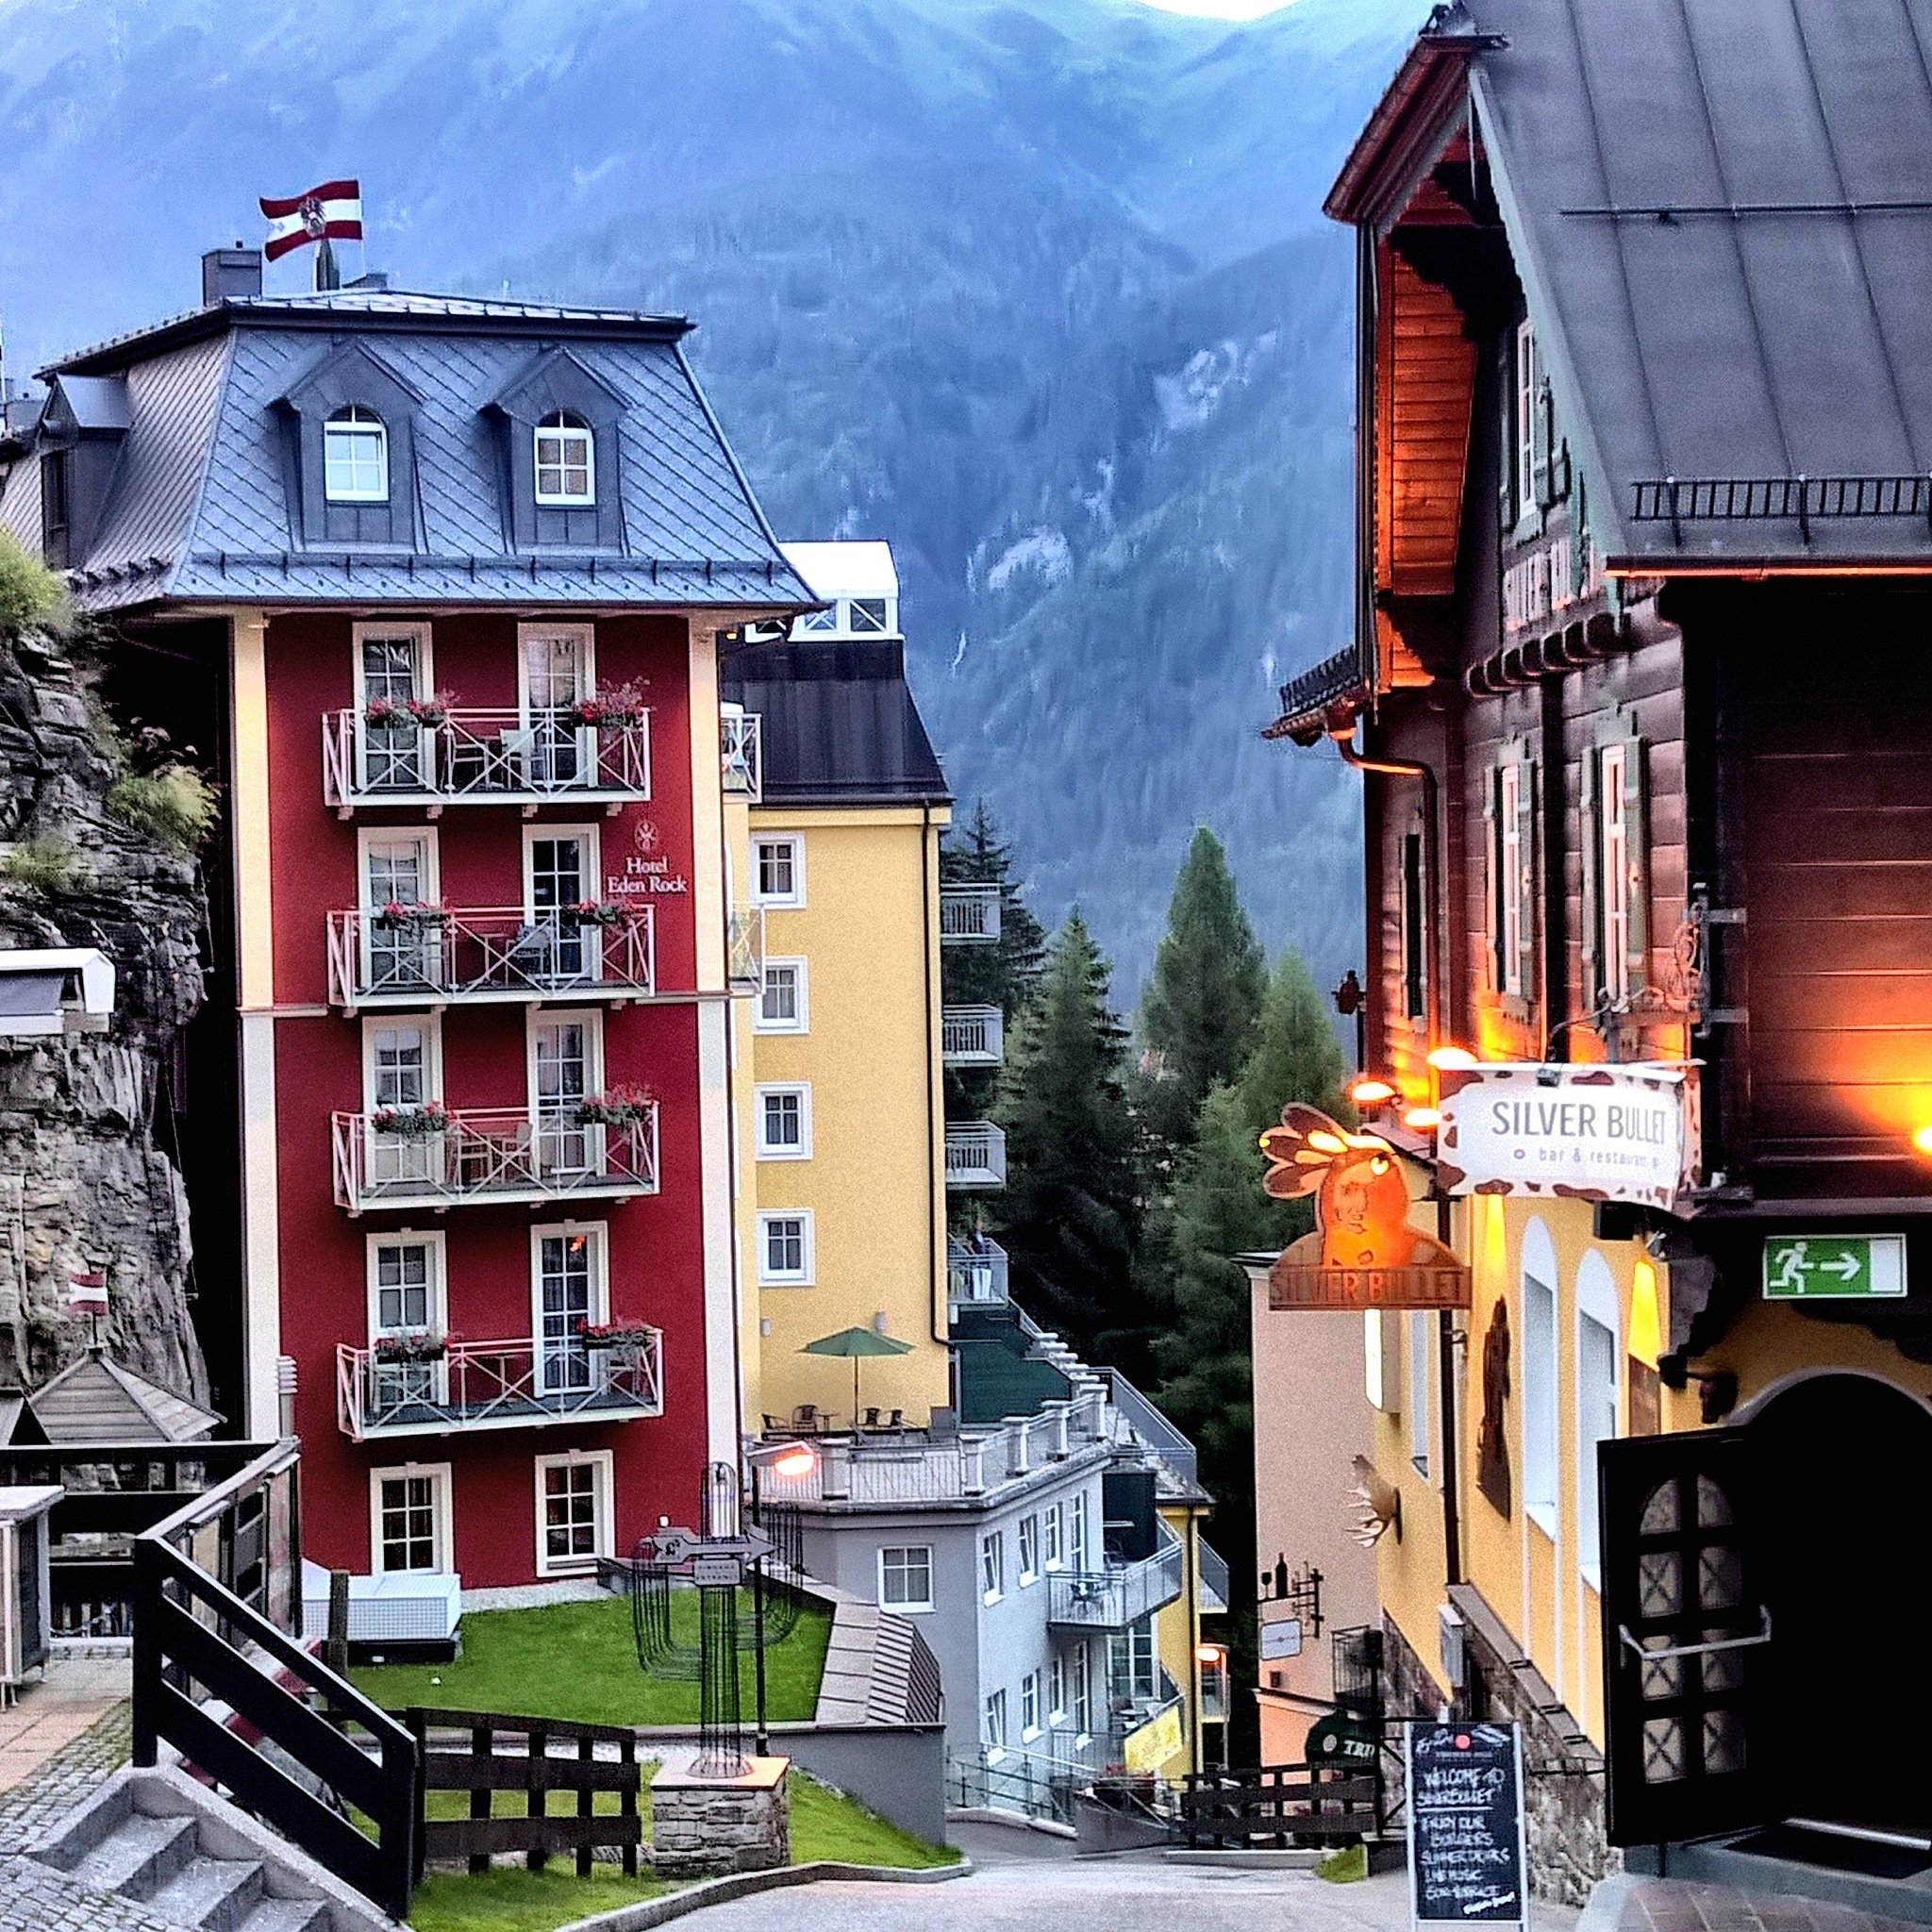 Bad Gastein street view by Krister Honkonen